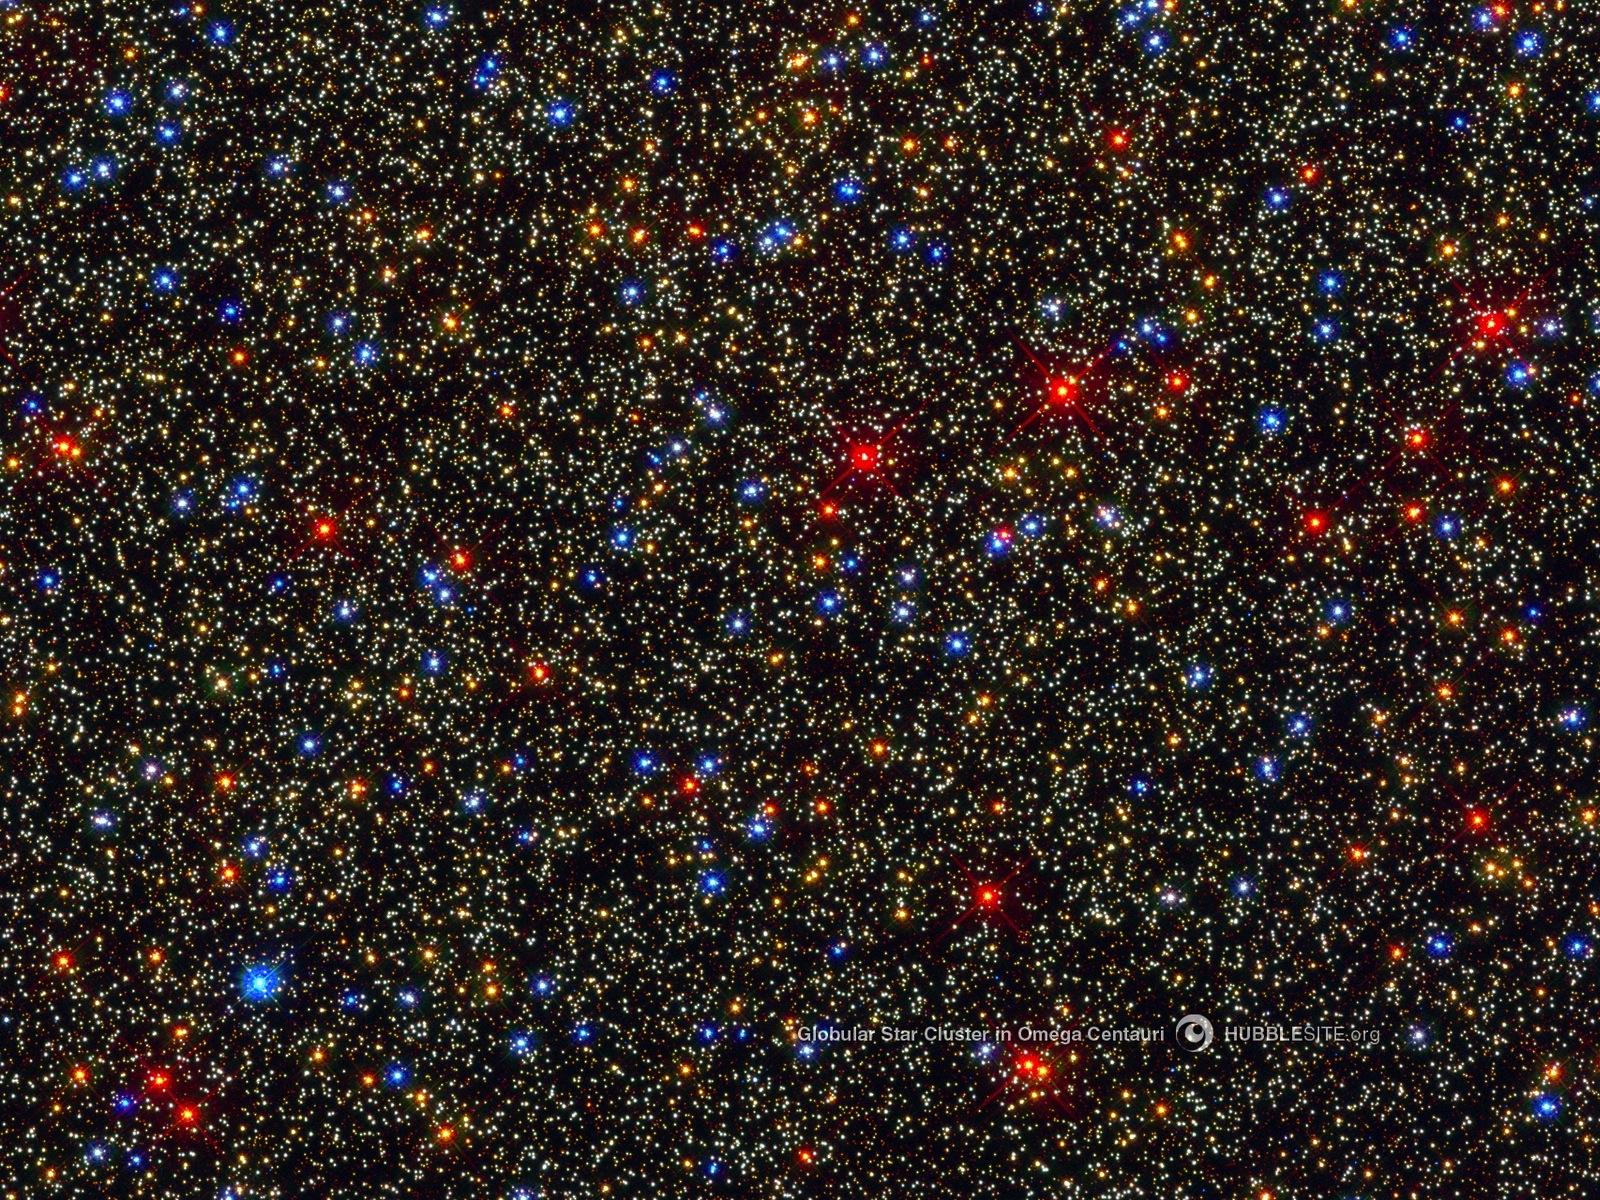 Globular Star Cluster Omega Centauri space wallpaper